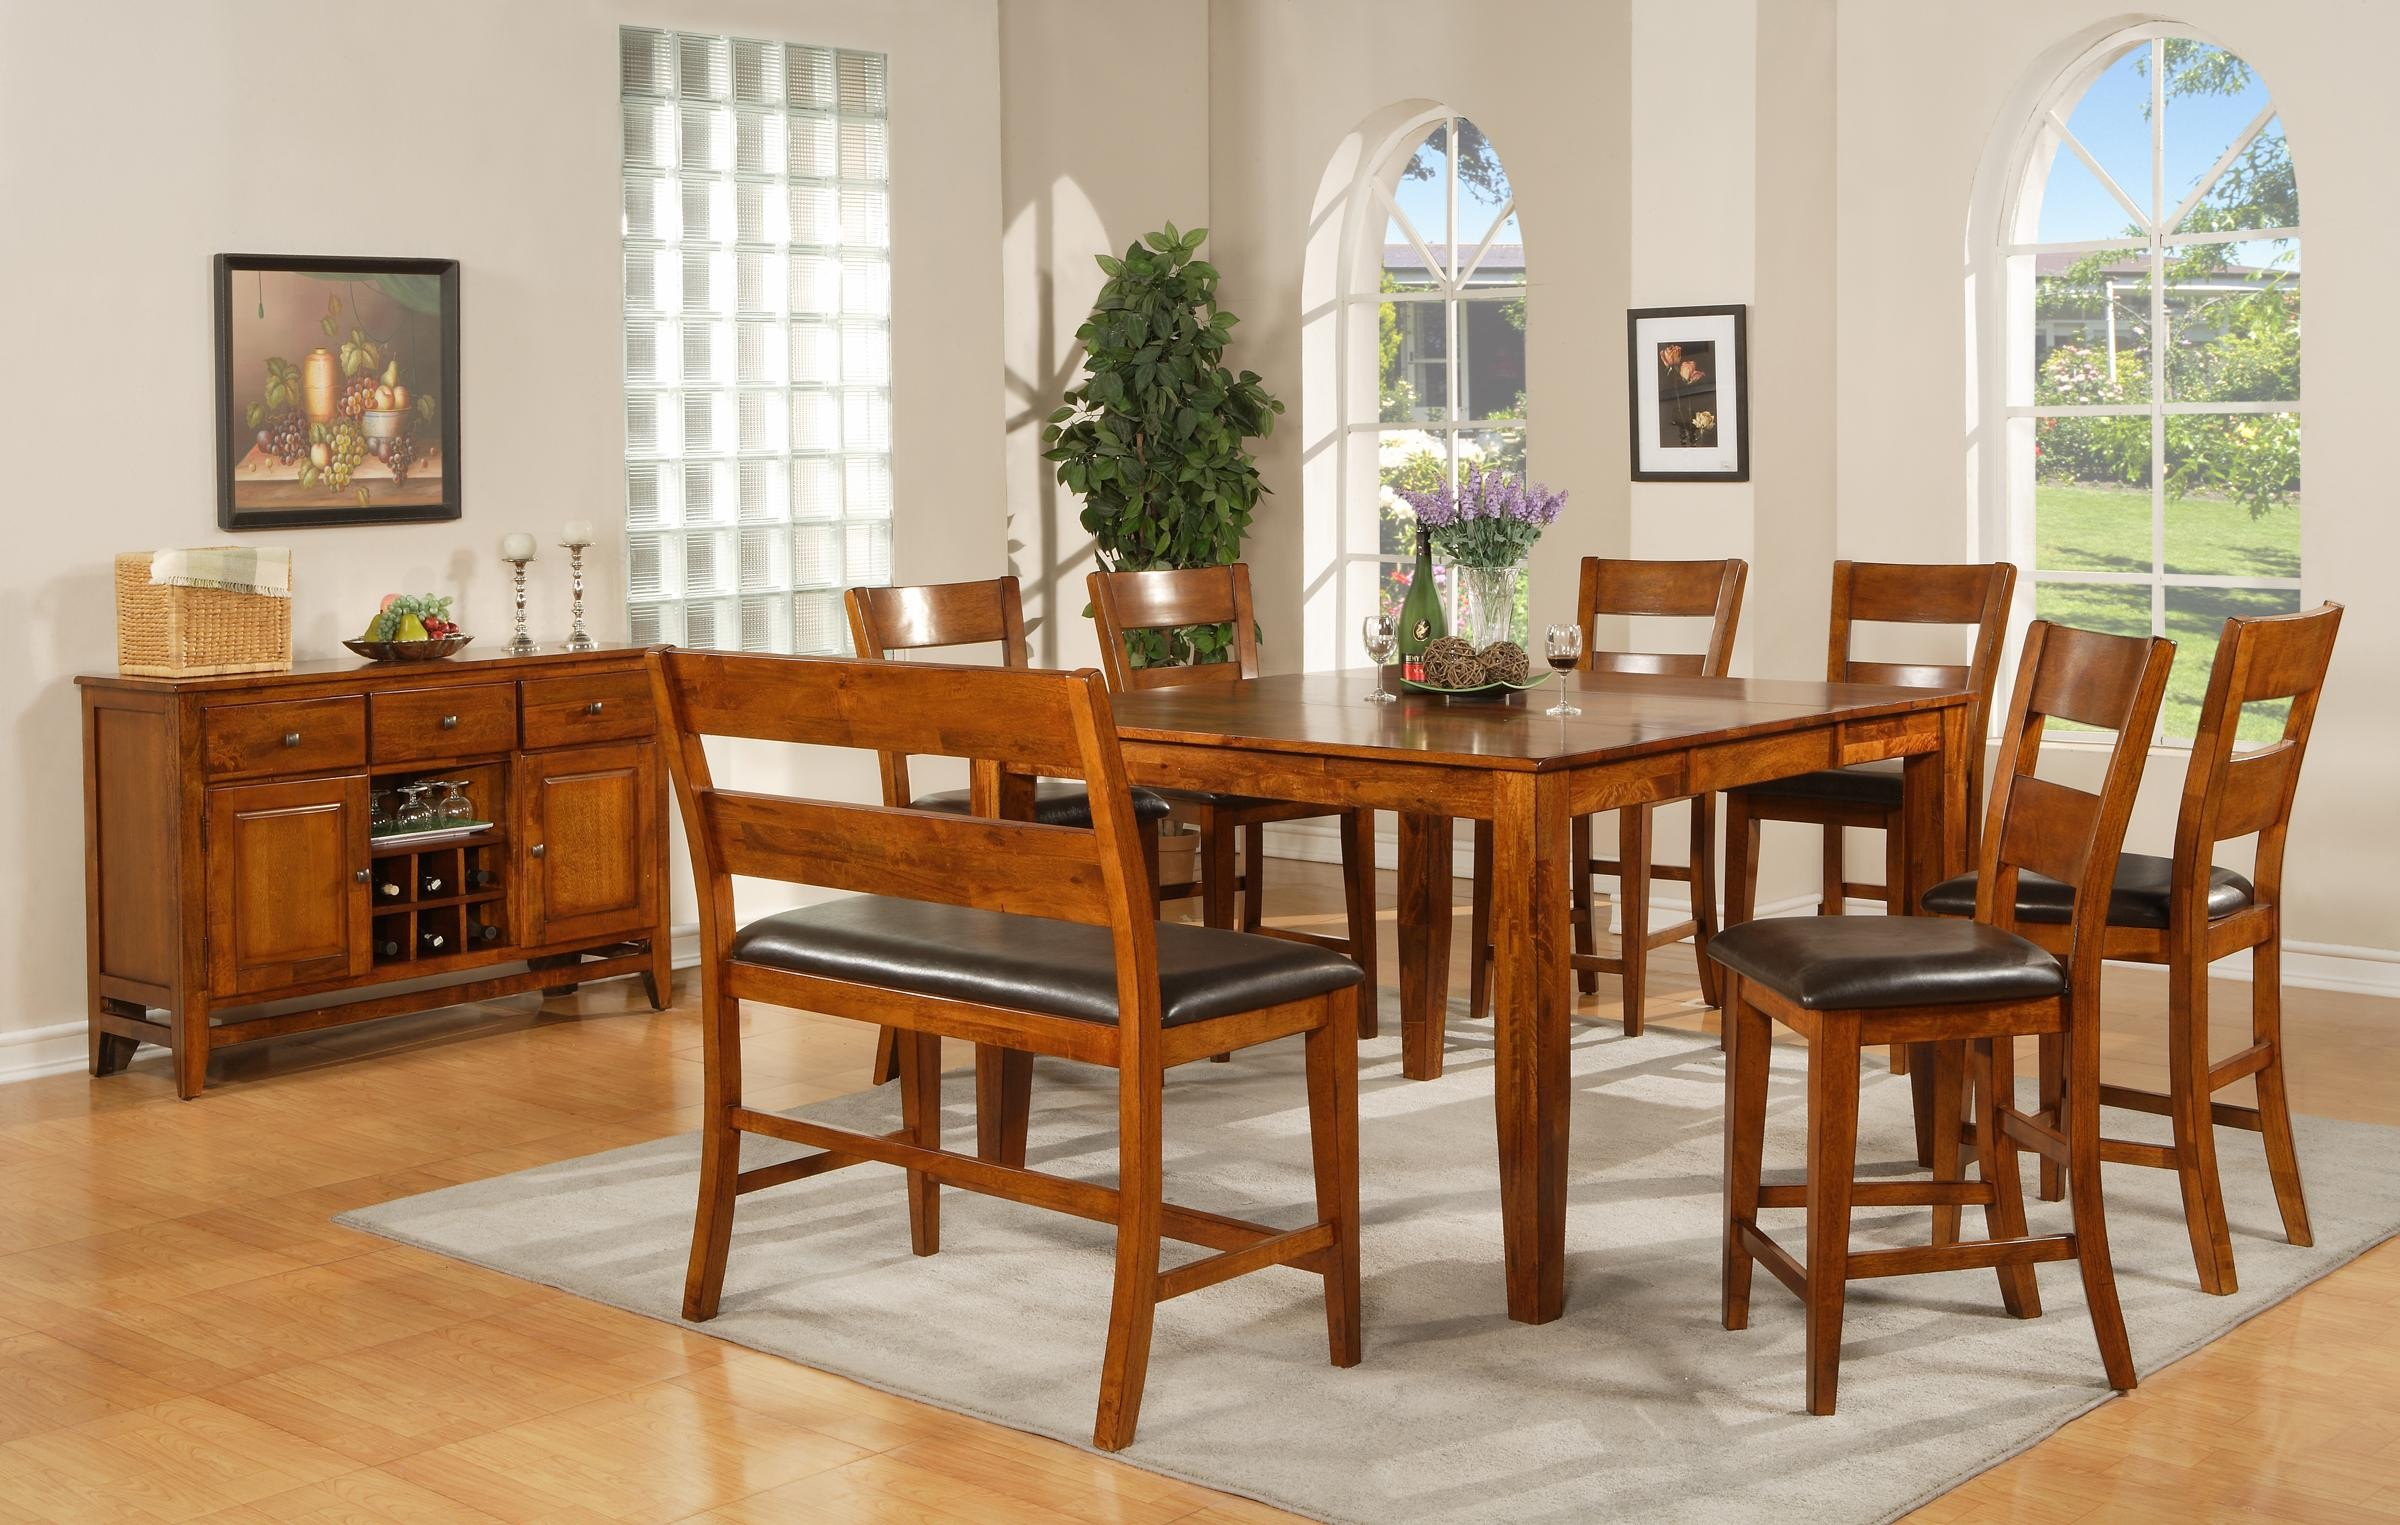 Square kitchen table with bench - Photo Gallery Of The Square Kitchen Tables For Amazing Contemporary Apartments